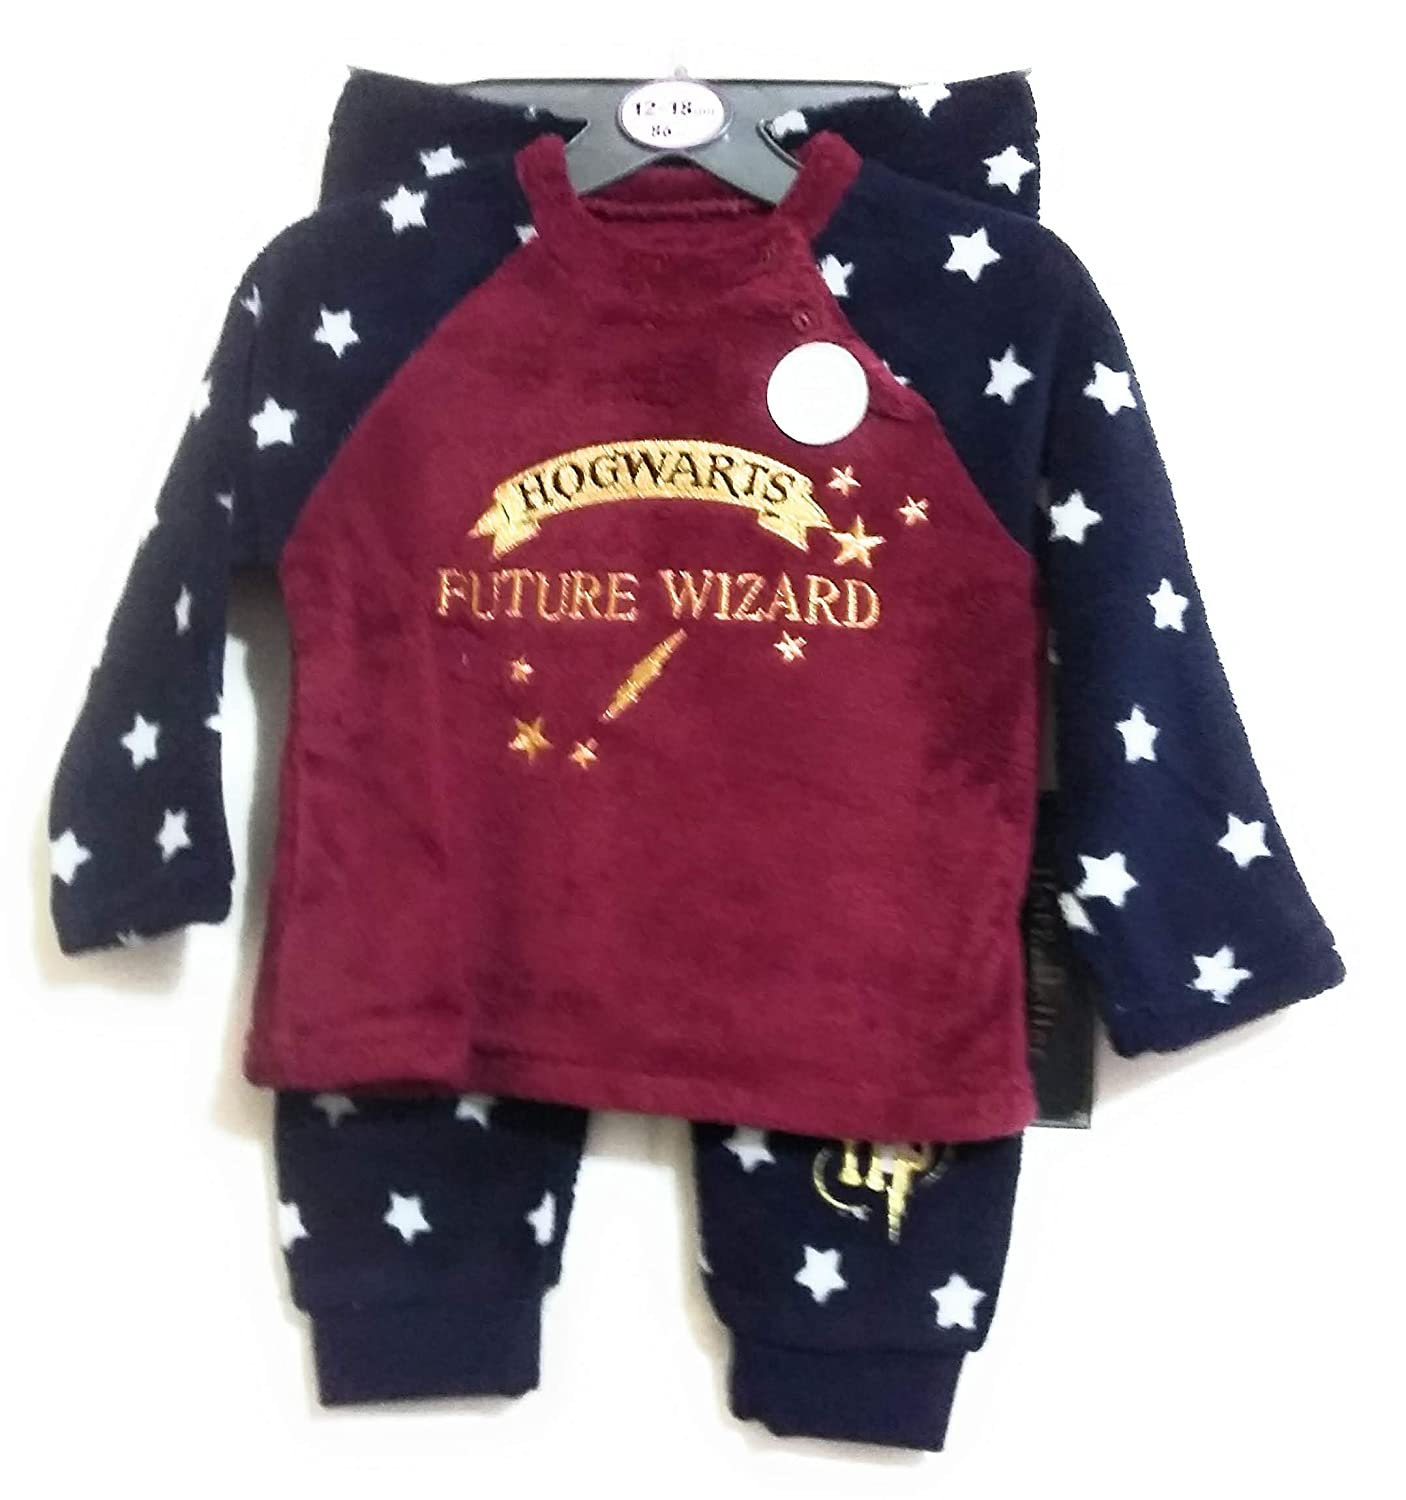 Licensed_Primark Harry Potter Hogwarts Baby Boys Soft Fleece Pyjamas PJ's Age 12-24 Months